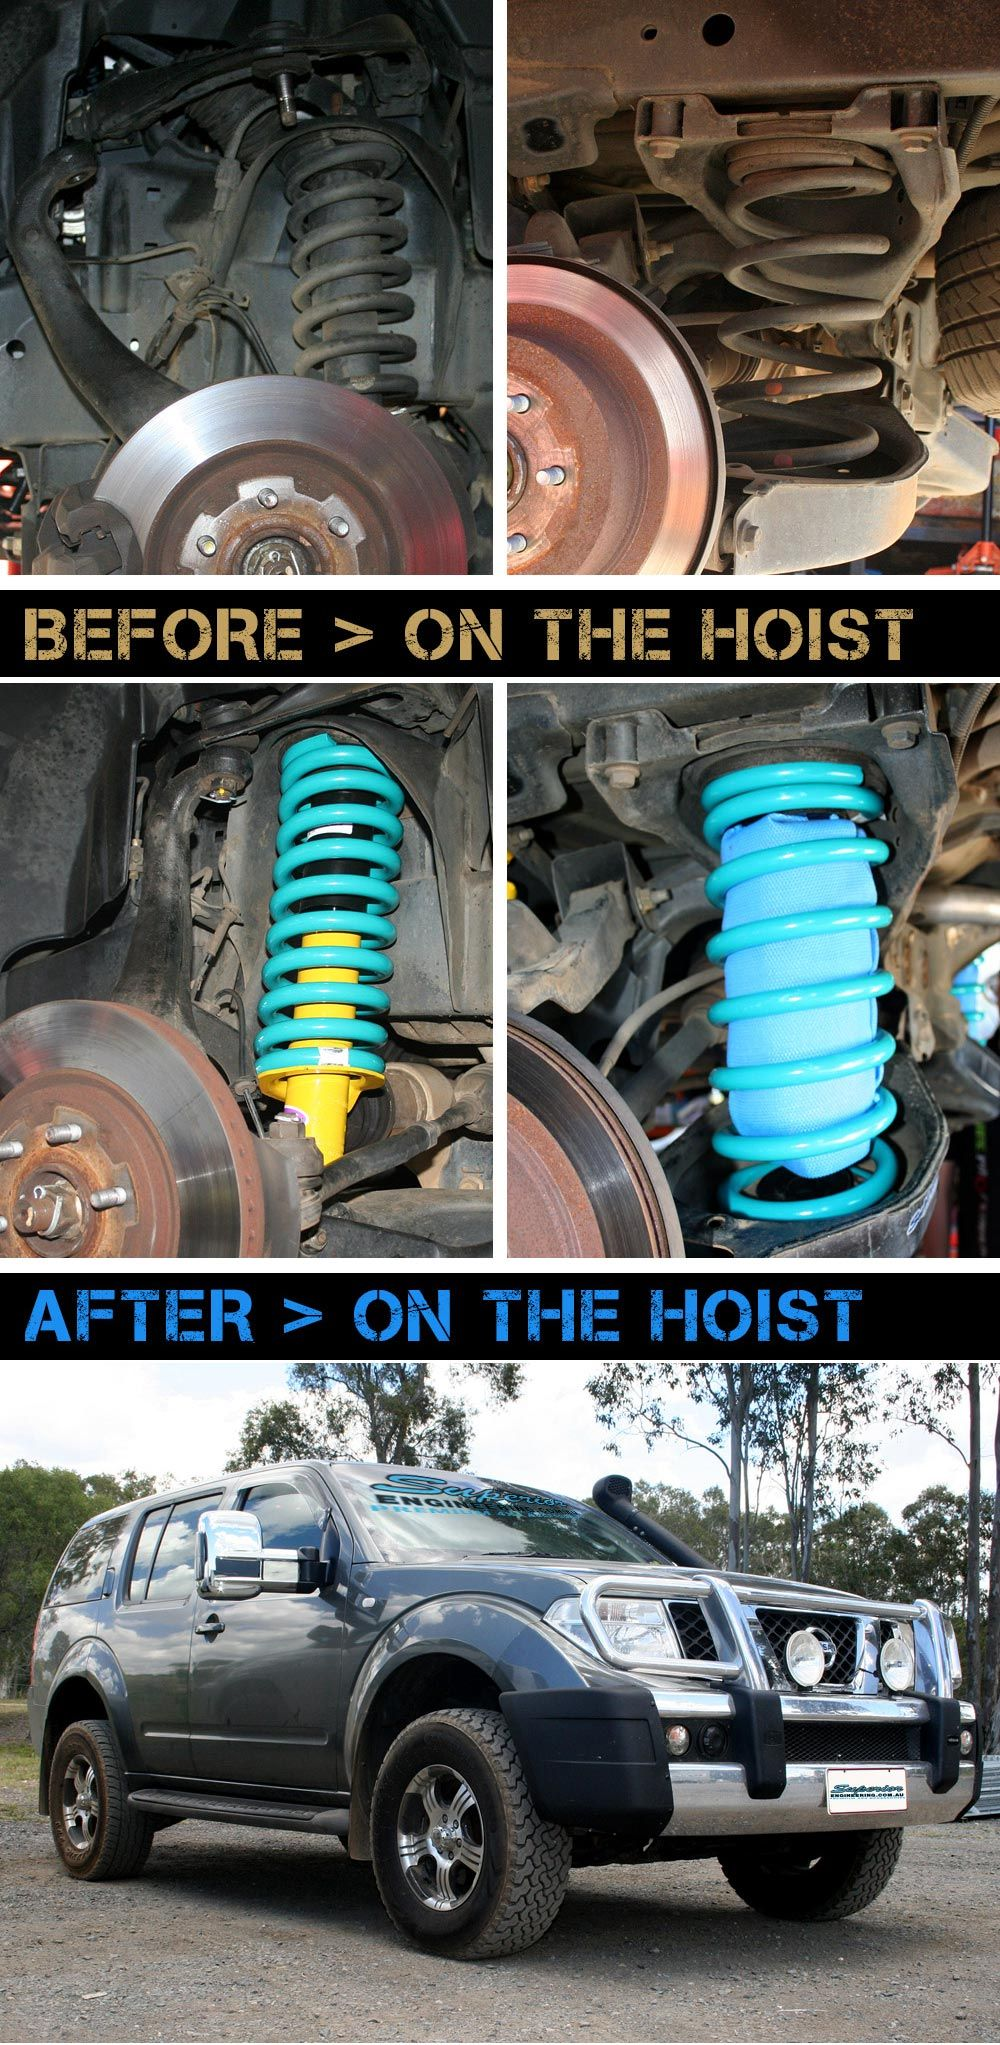 Check out whats on the hoist nissan pathfinder r51 fitted with nissan pathfinder r51 fitted with 40mm superior lift kit vanachro Images